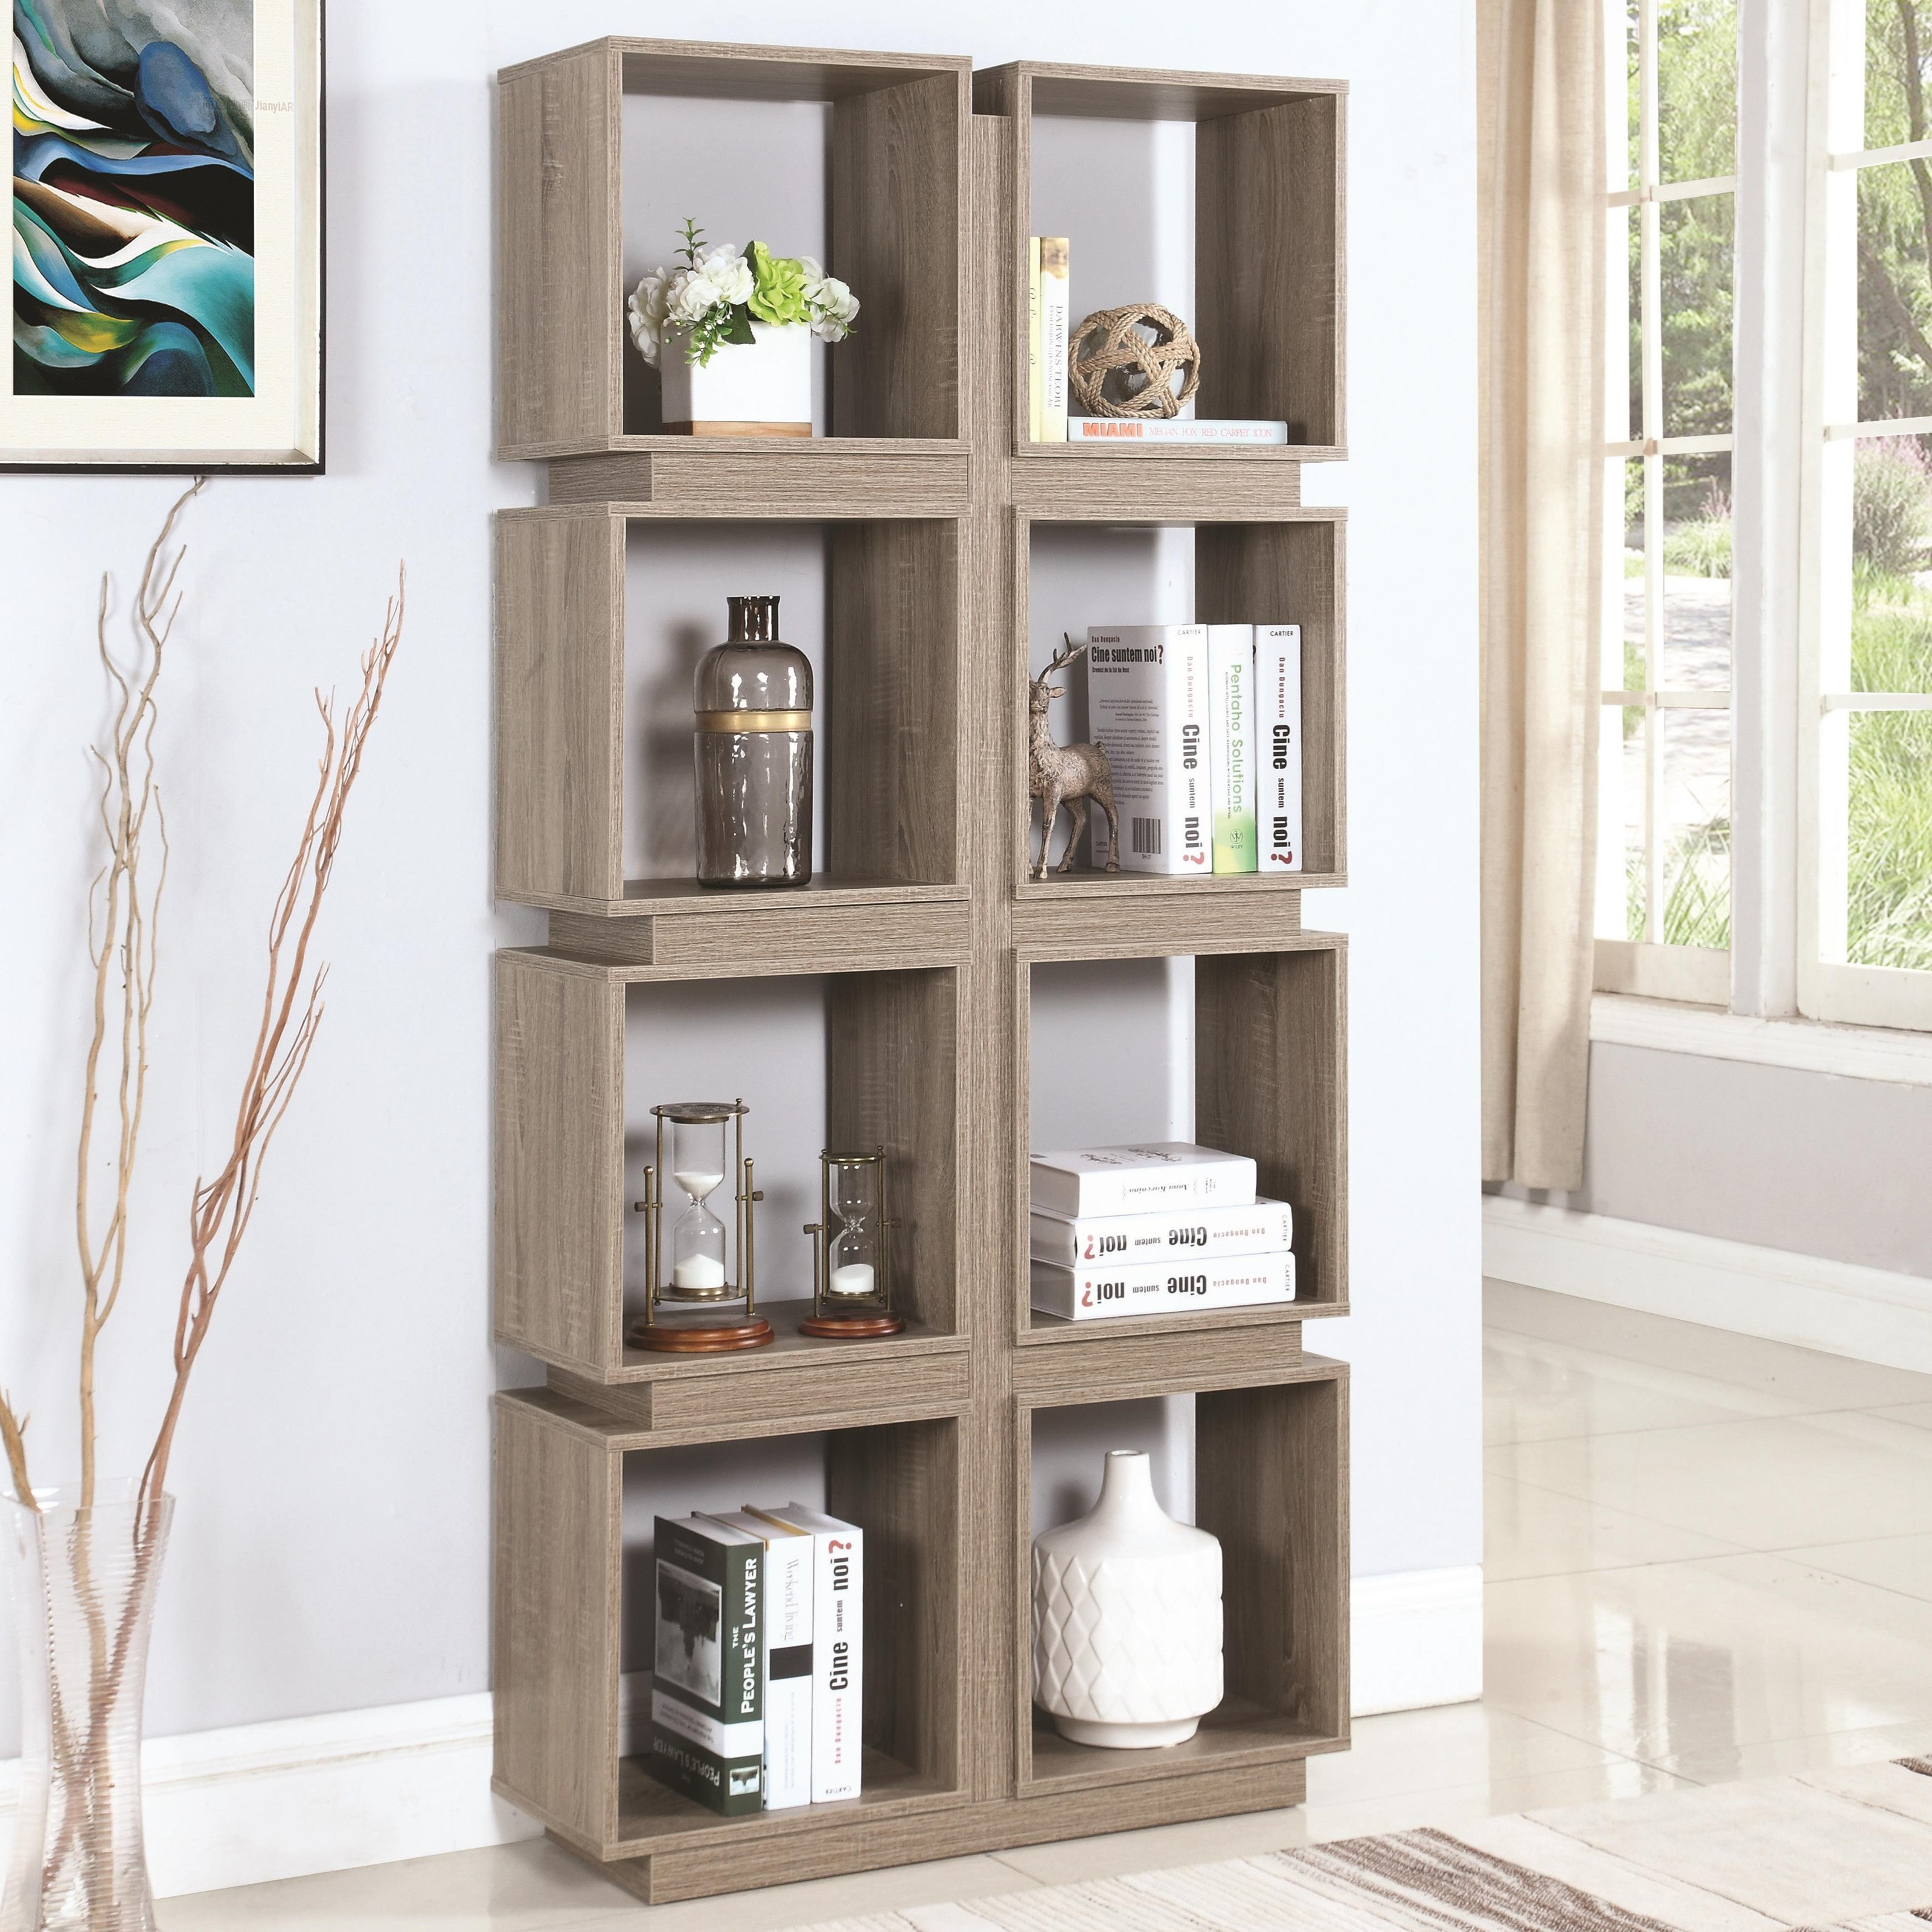 Coaster Bookcases Bookcase - Item Number: 801845